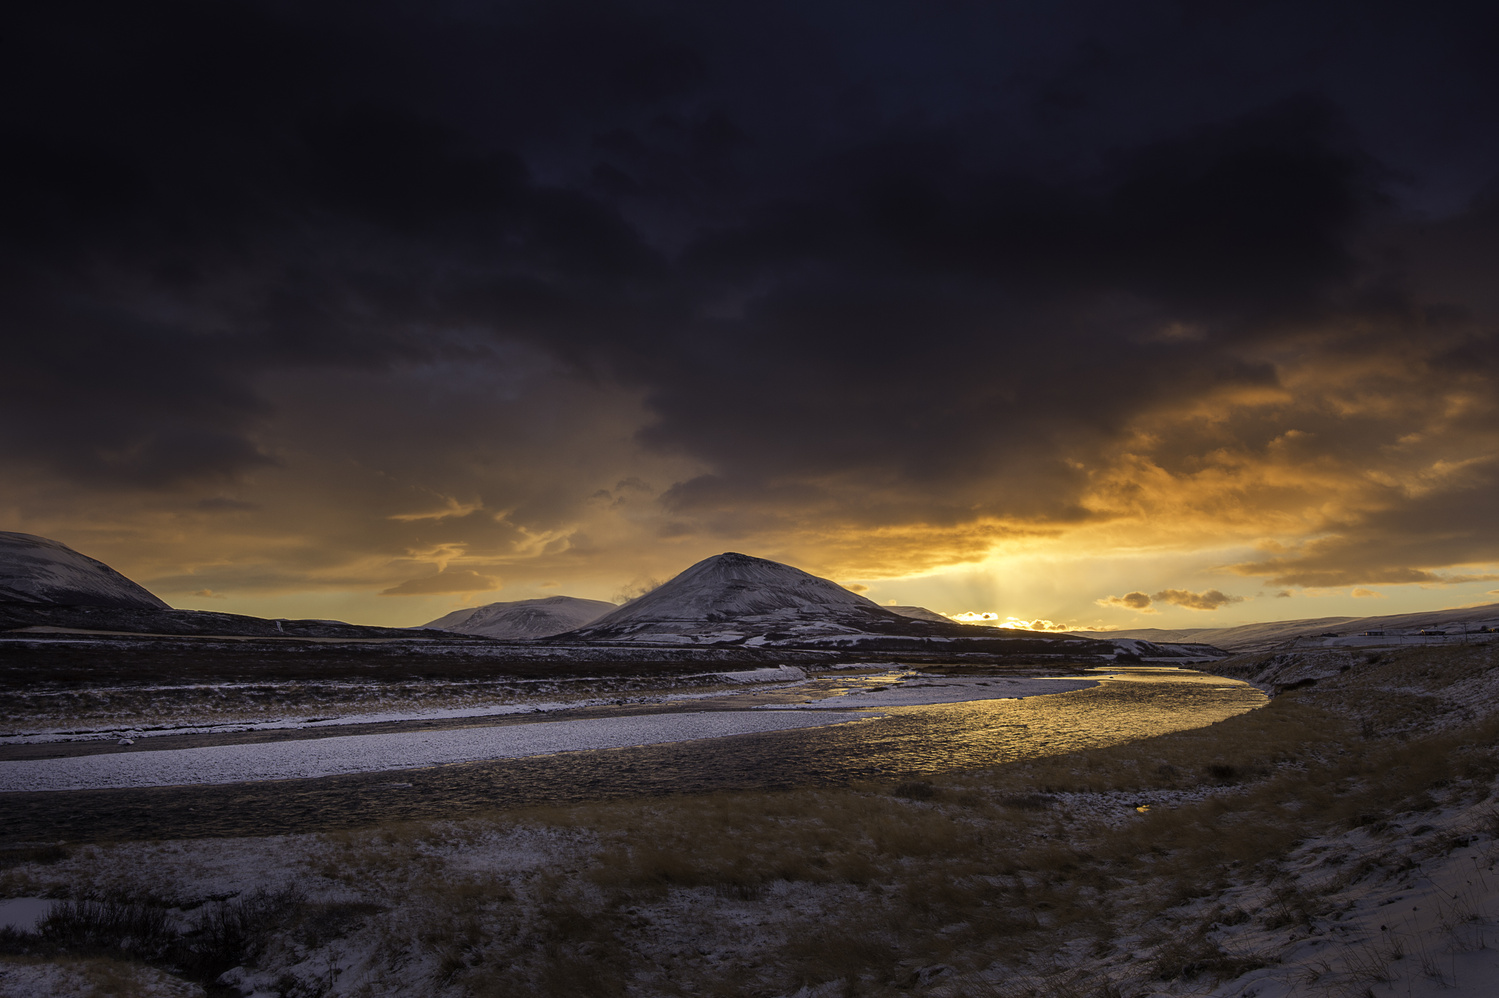 Land of fire and ice by Alison Bailey